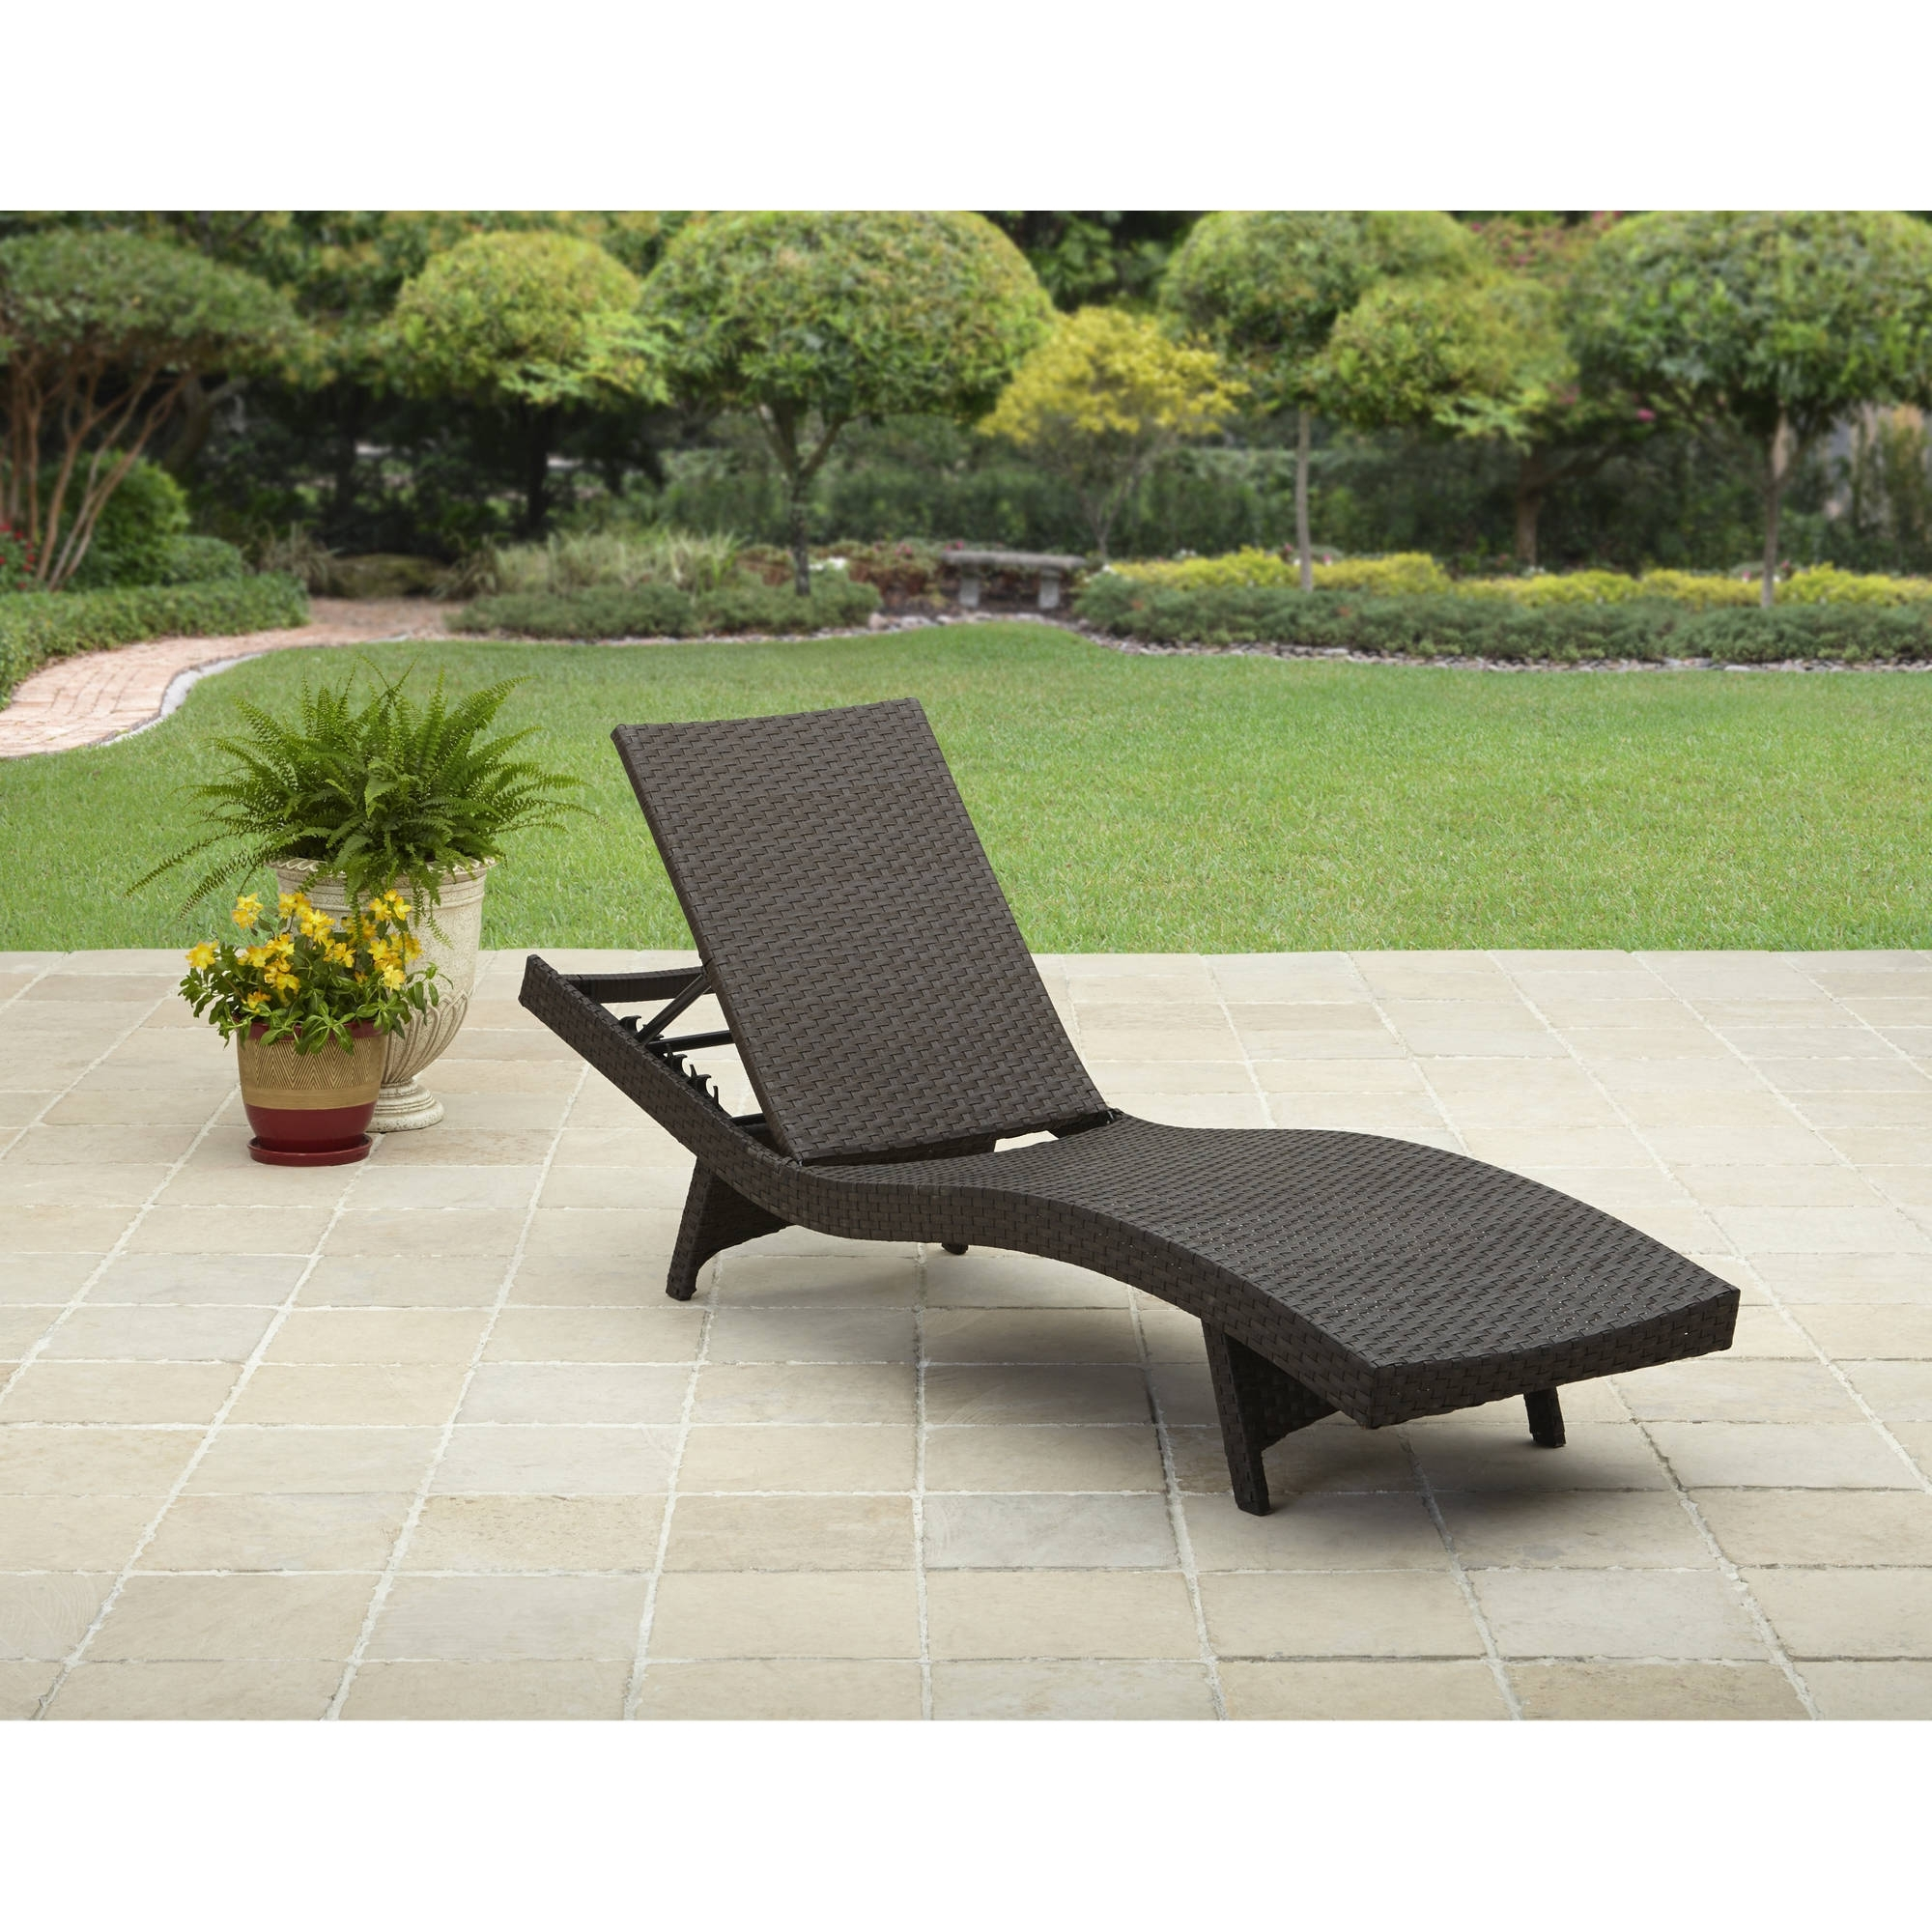 Chaise Lounge Chairs At Walmart Intended For Popular Better Homes And Gardens Avila Beach Chaise – Walmart (View 8 of 15)